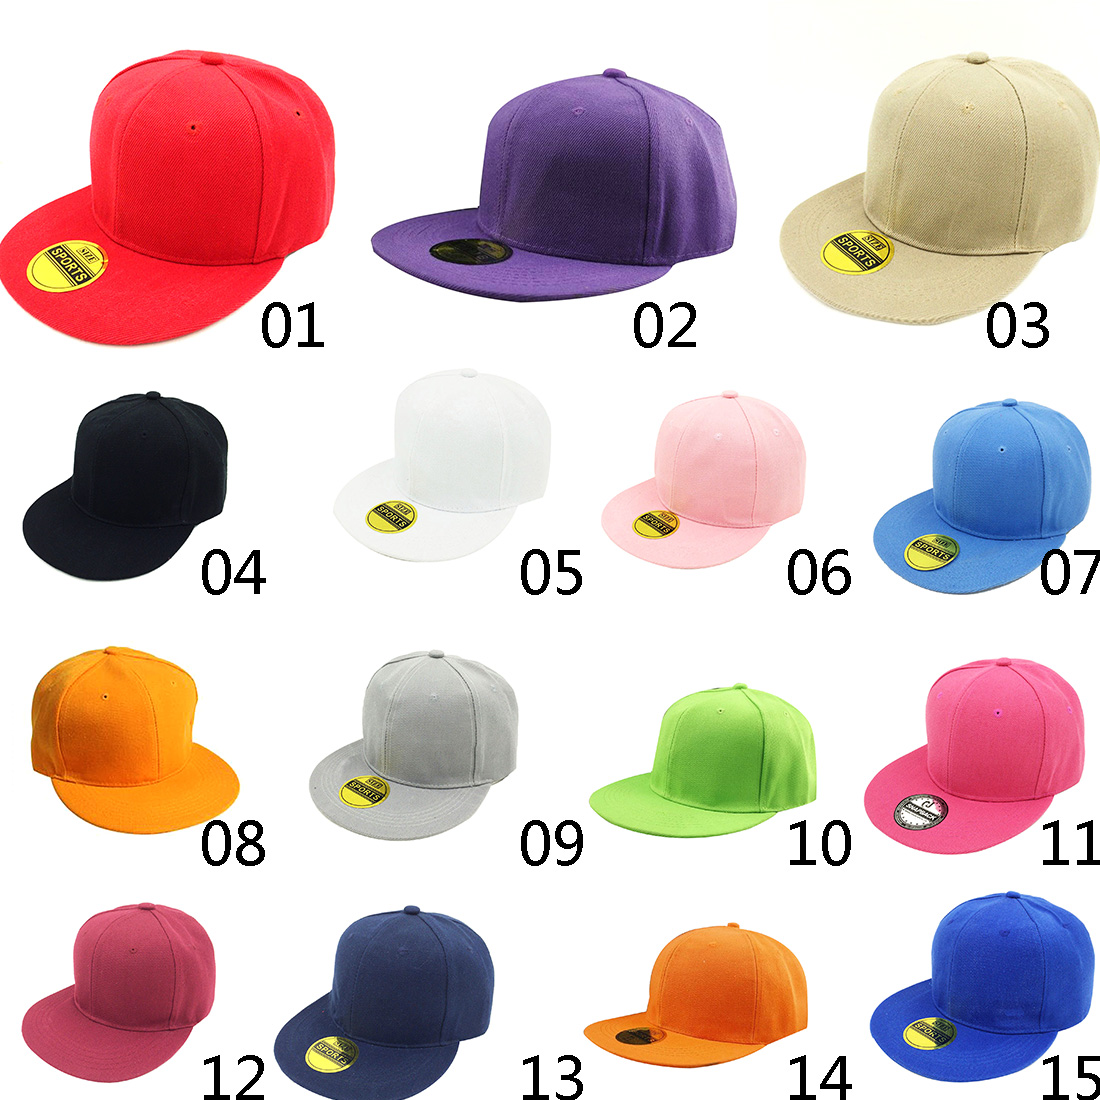 New Men And Women Baseball Cap Retro Solid Color Flat Hat Outdoor Hip Hop White Black Baseball Cap Fashion Adjustable in Men 39 s Baseball Caps from Apparel Accessories